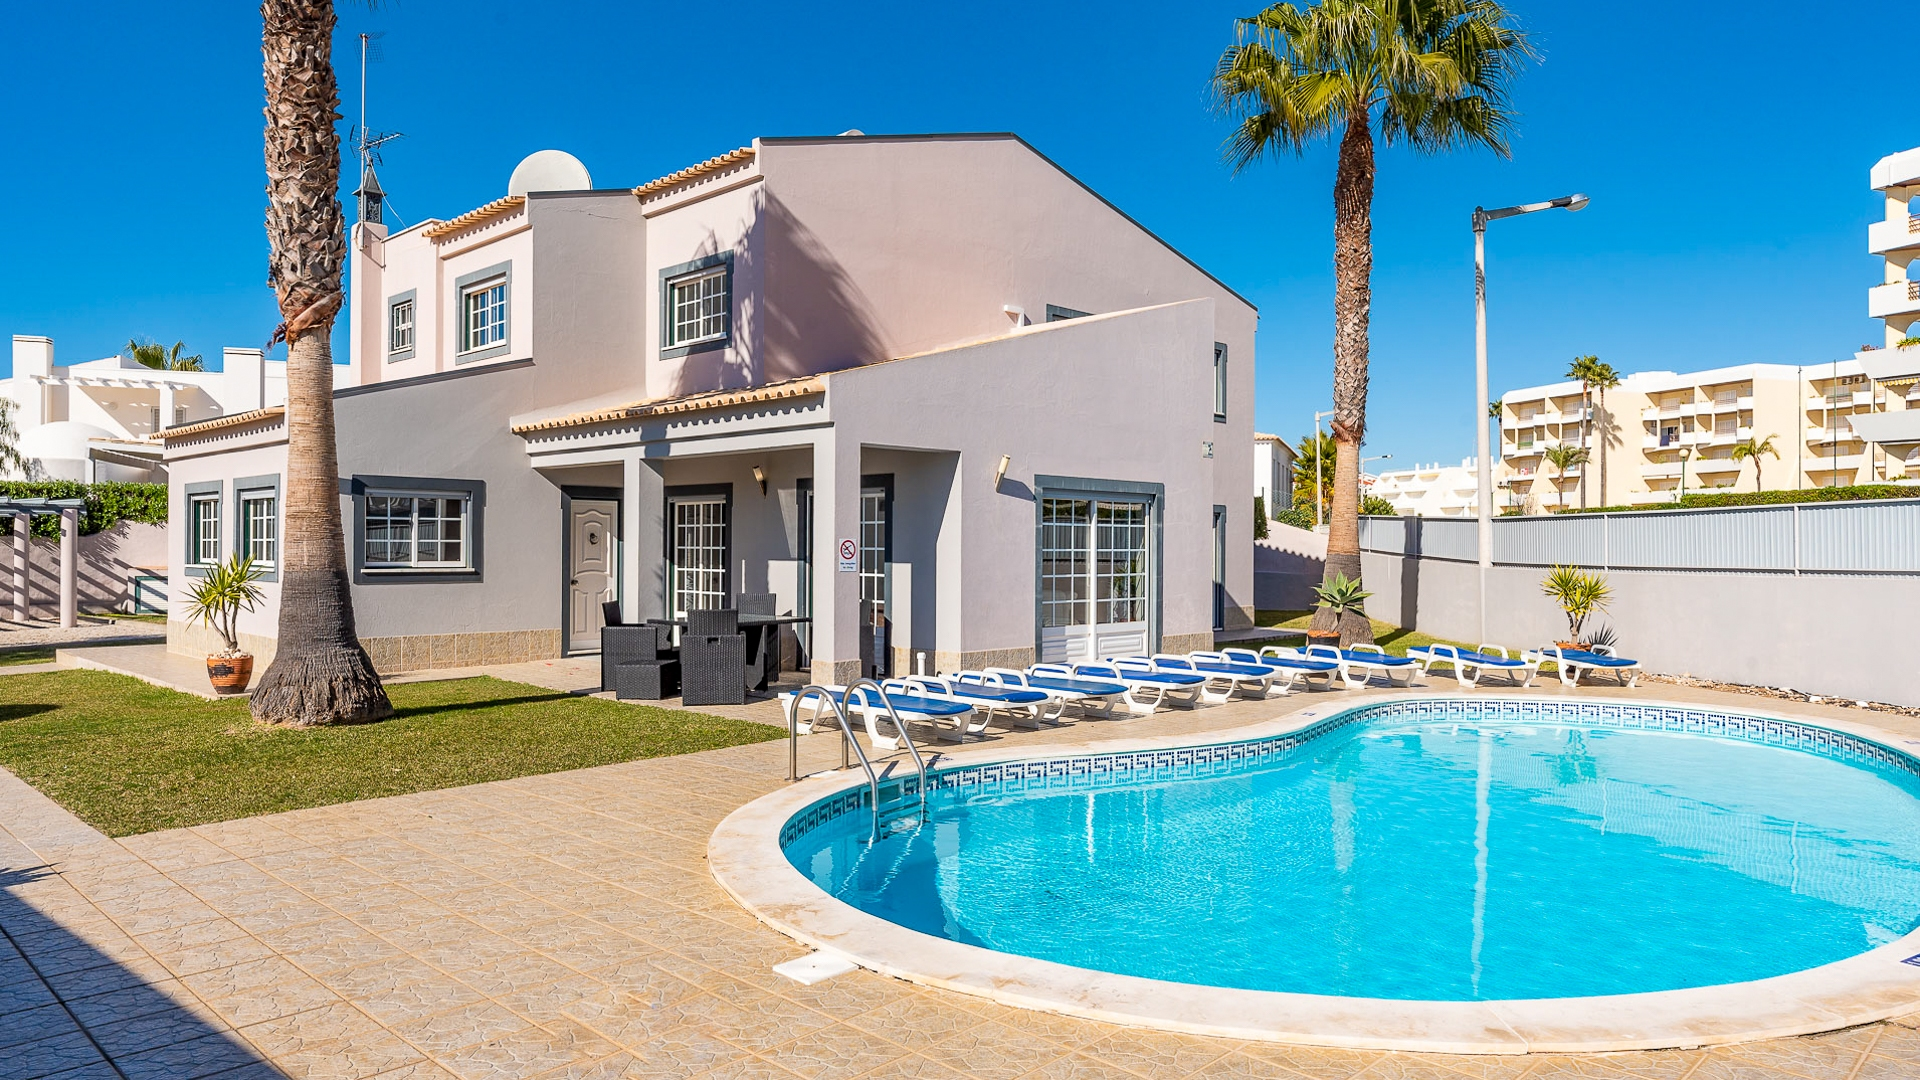 5 Bedroom Villa Close to Beaches, Albufeira | PGM1645 This property is close to amenities, beaches, restaurants and supermarket. Excellent investment property for holiday rentals due to its fantastic location.